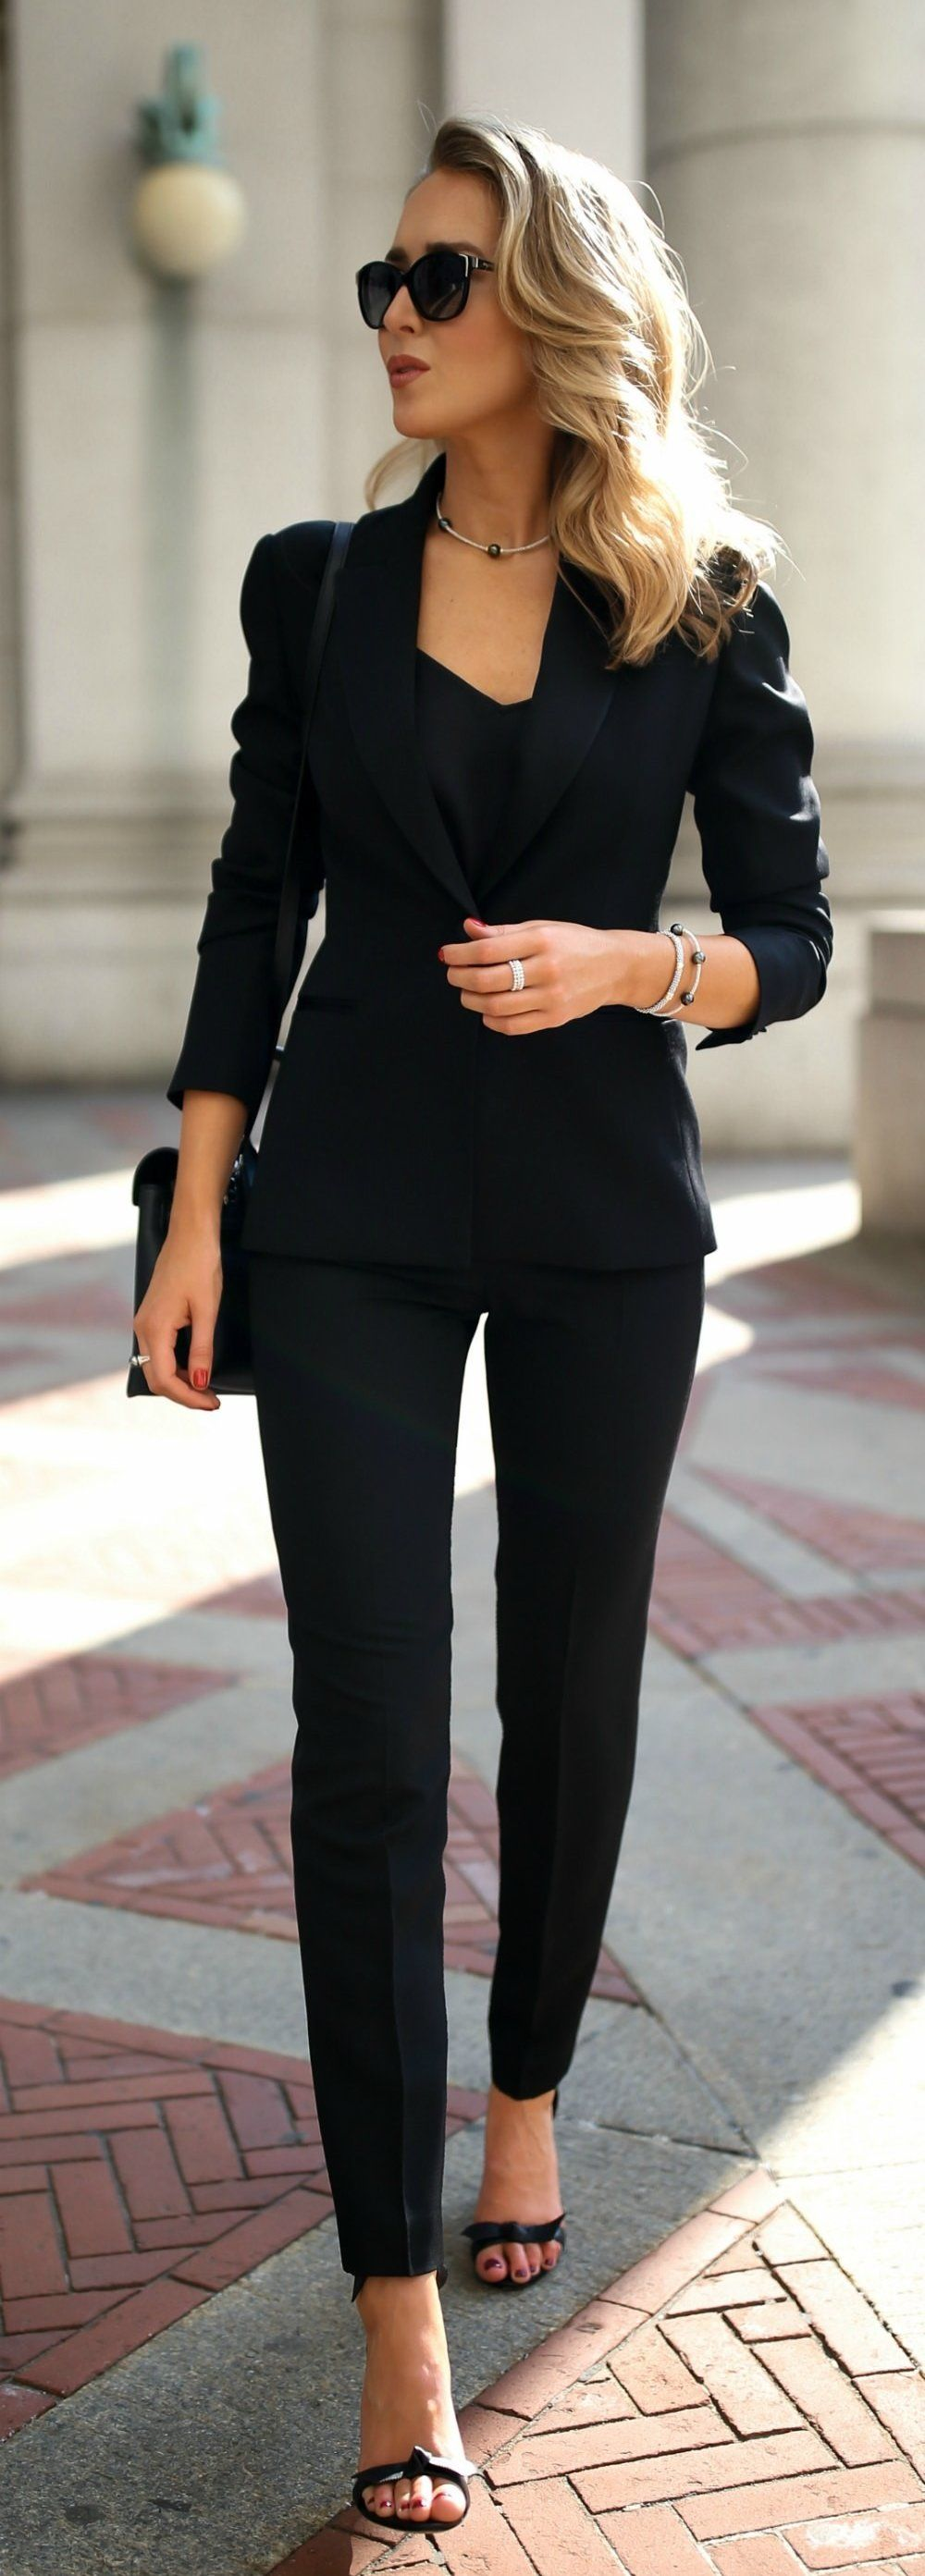 Fall Outfits Women S Black Blazer And Dress Pant Classy Outfits For Women Professional Outfits Office Outfits Women [ 2786 x 1000 Pixel ]